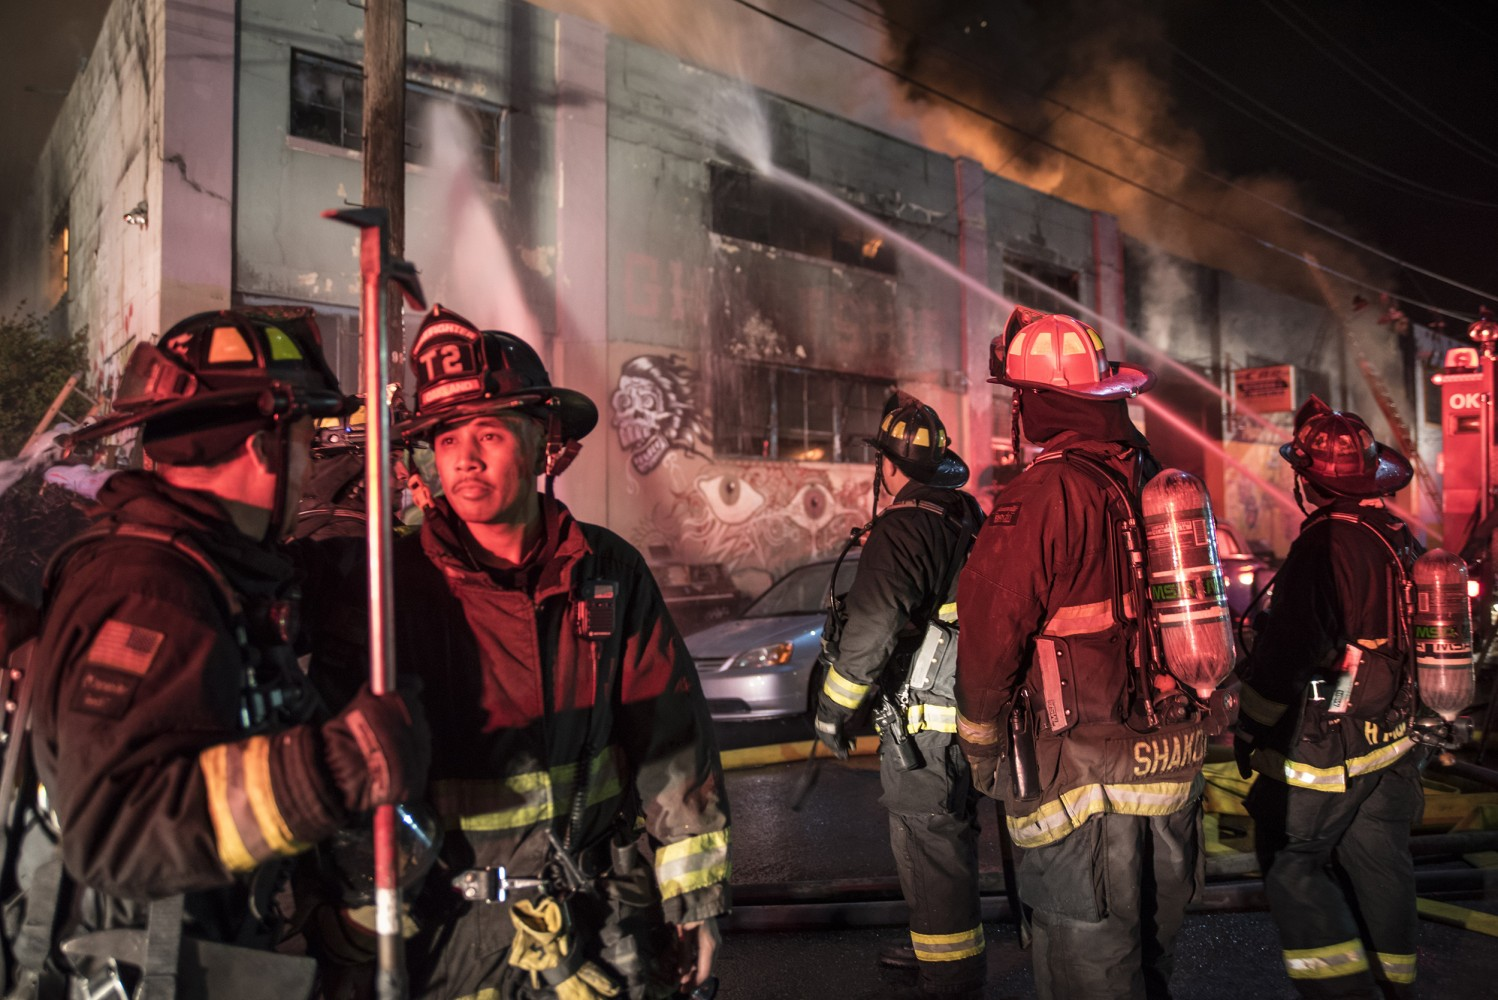 Warehouse fire deaths expected to climb past 33